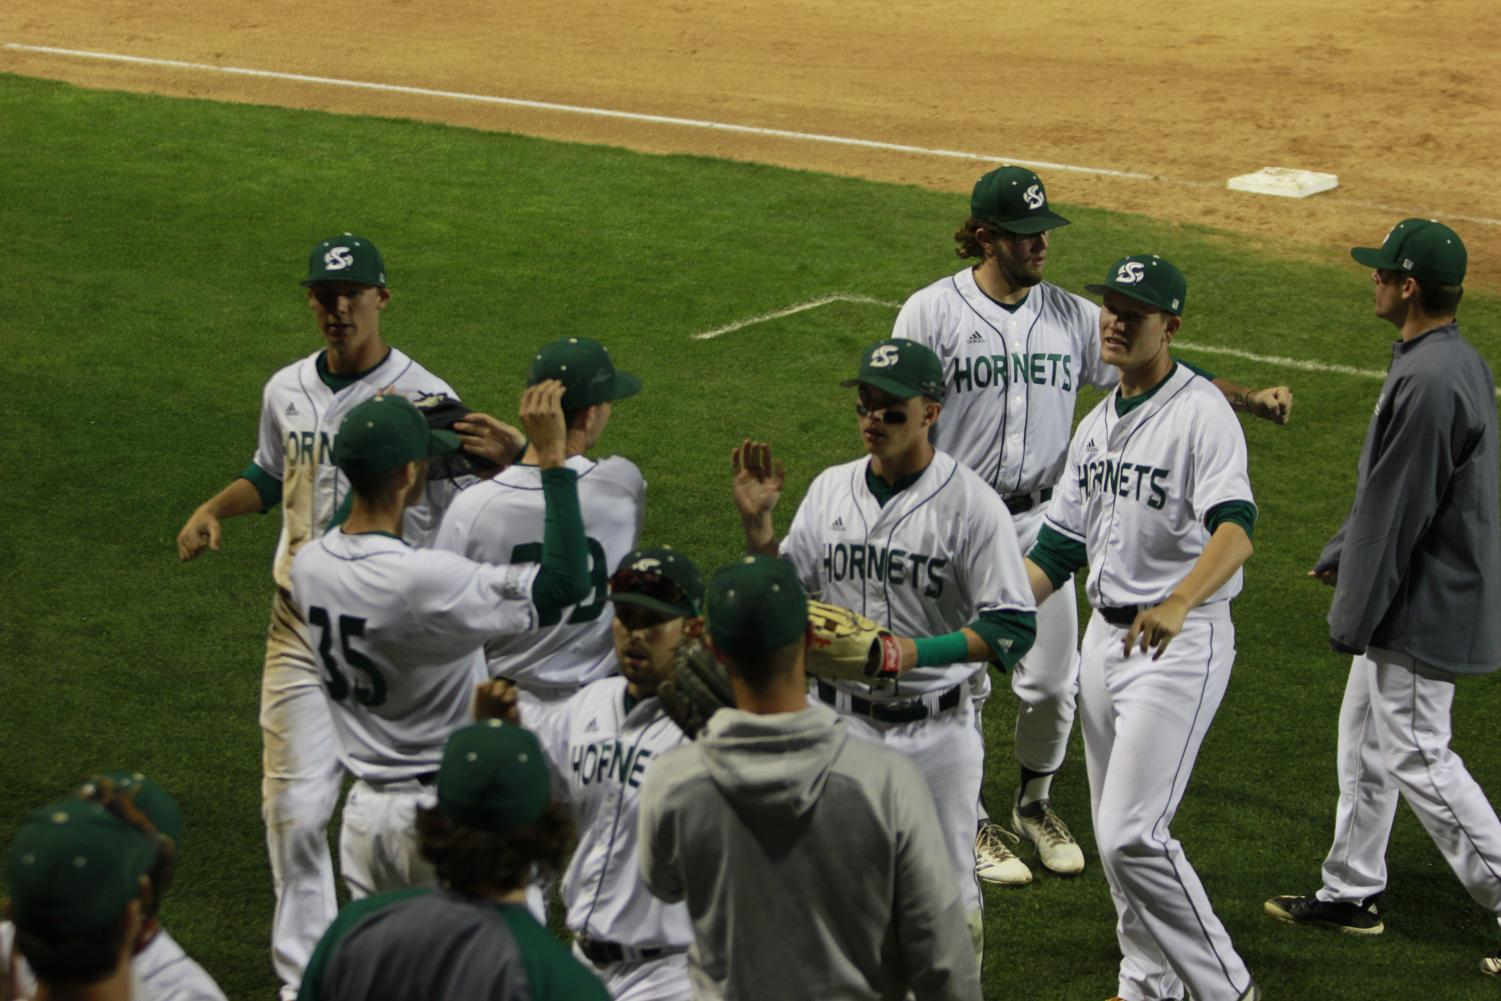 Members+of+the+Sac+State+baseball+team+congratulate+each+other+upon+returning+to+the+dugout+following+a+successful+inning+in+a+6-0+win+over+Cal+Tuesday+at+John+Smith+Field.+The+Hornets+went+12-1+on+a+season-long+13+game+homestand.